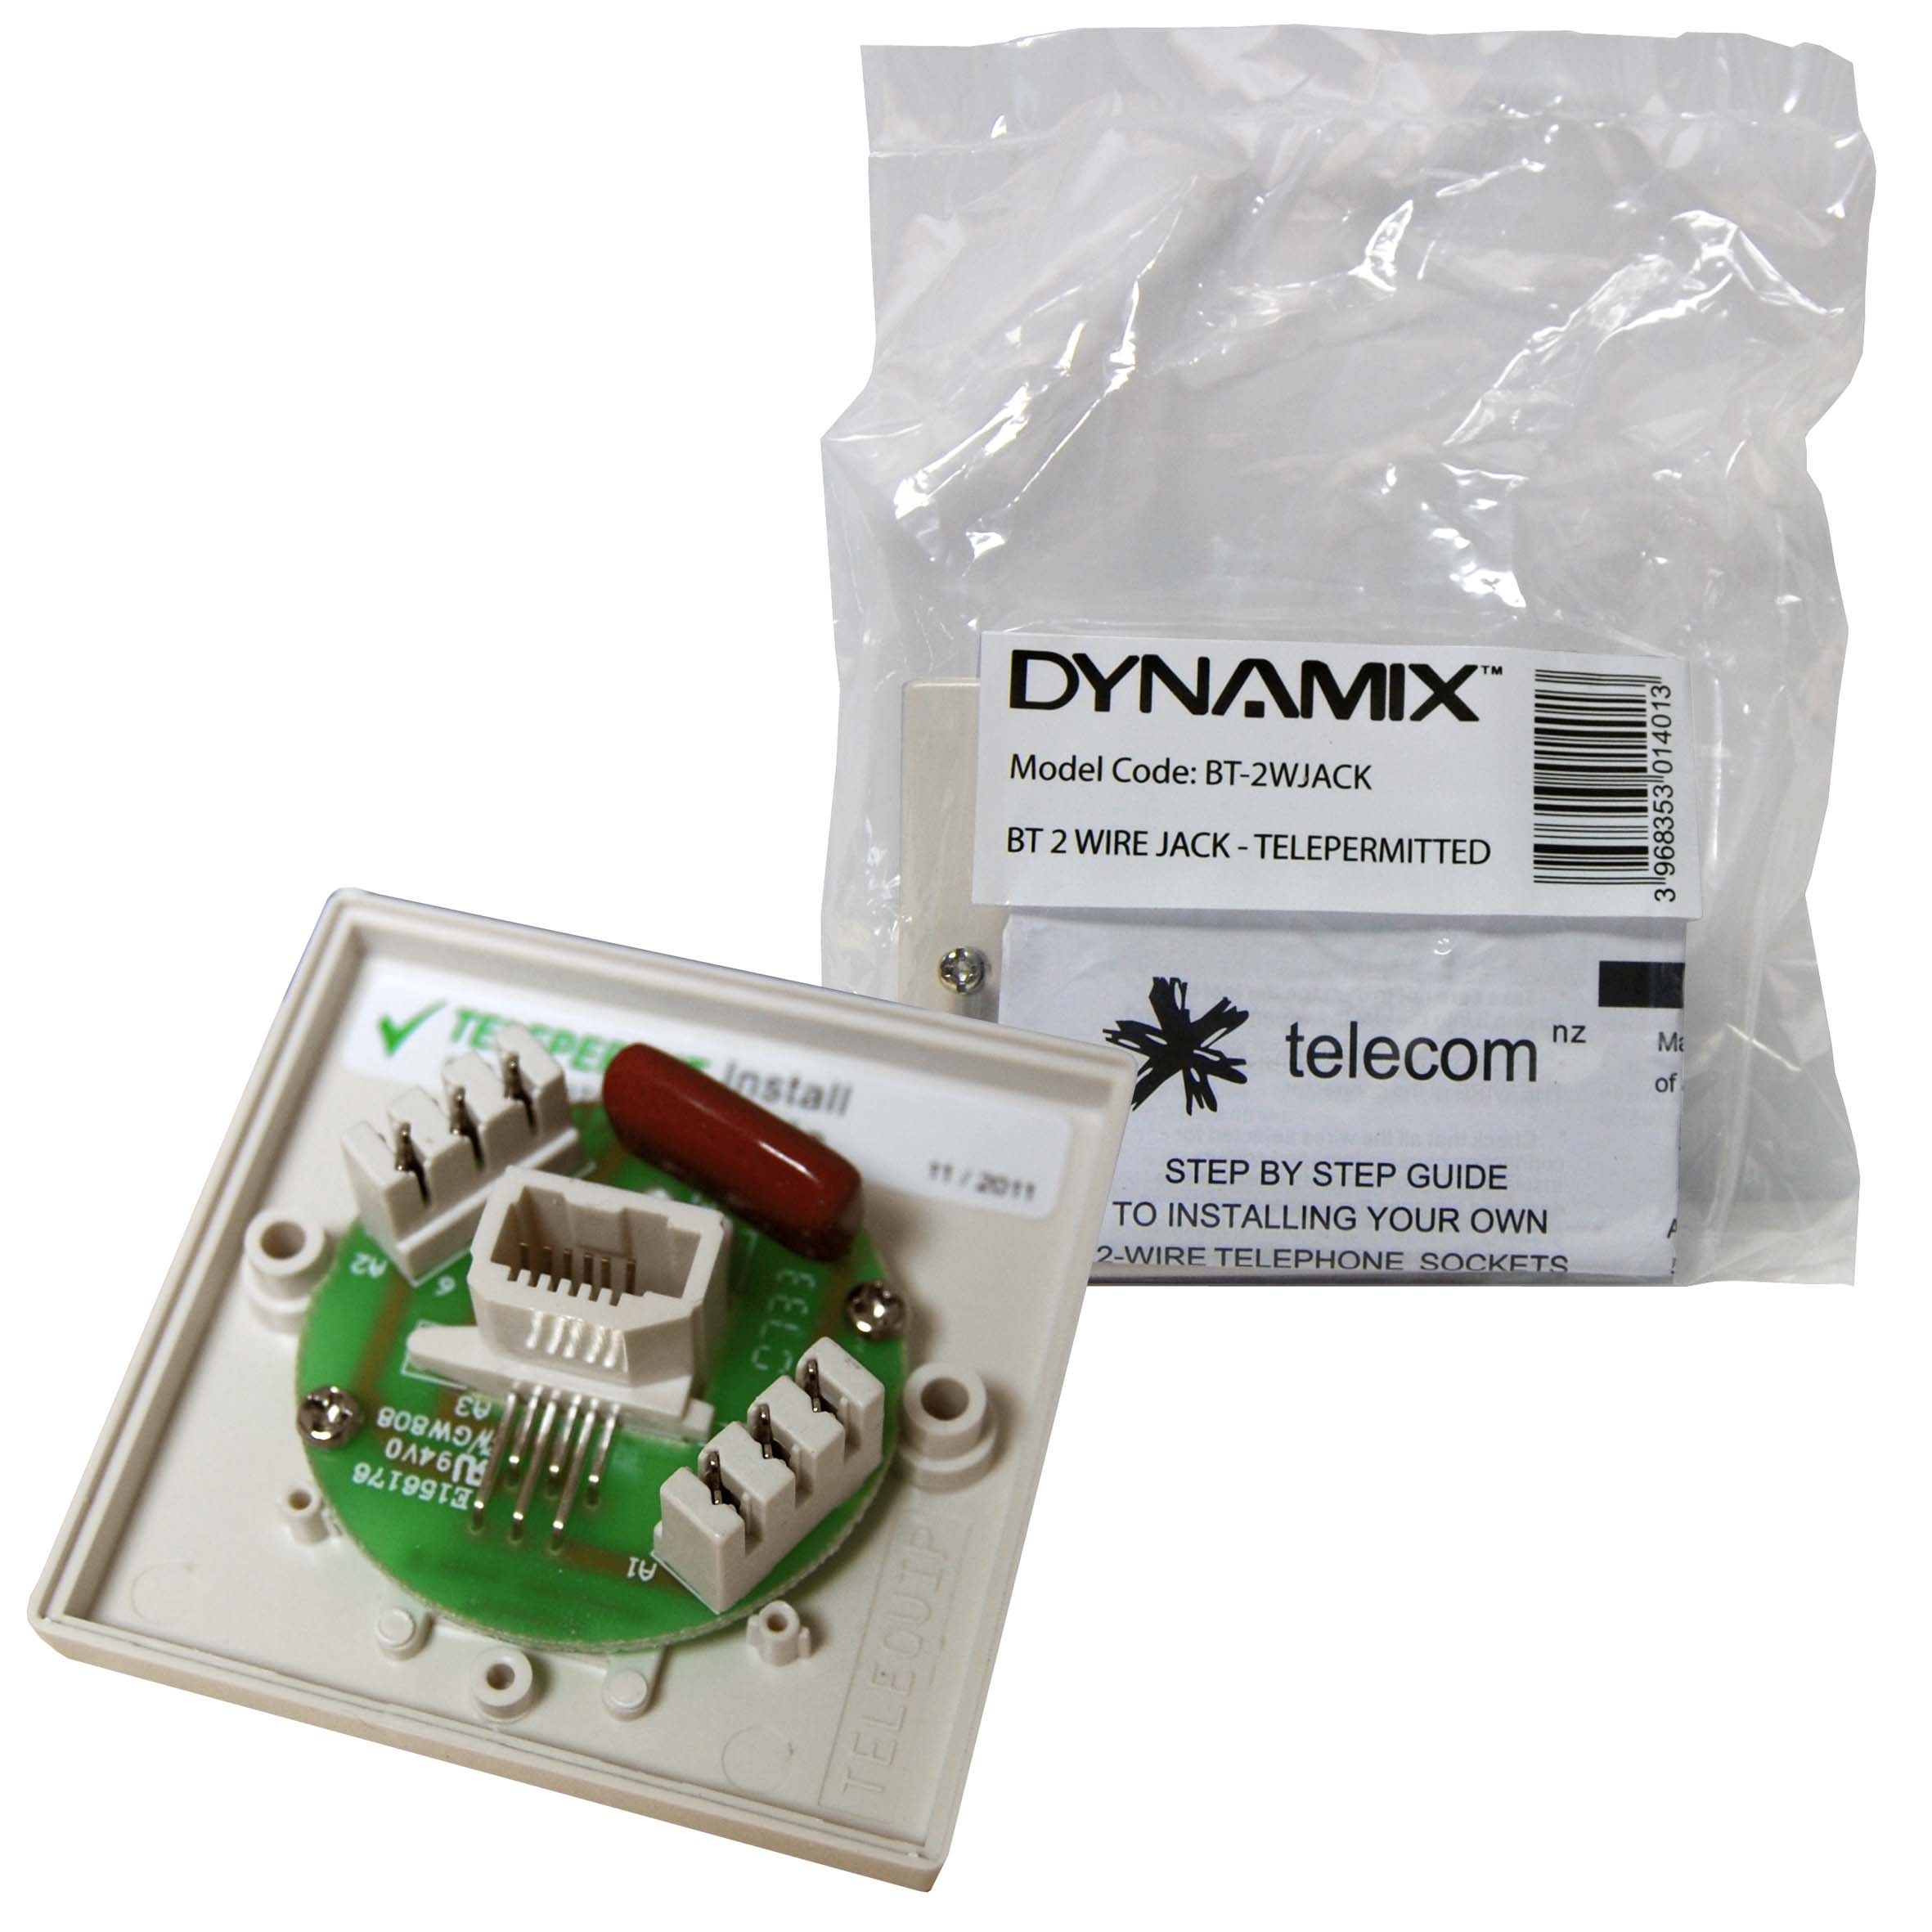 Dynamix Bt 2 Wire Jack Telepermited Powerun New Zealand Ltd Wiring A Mains Socket Call For Price